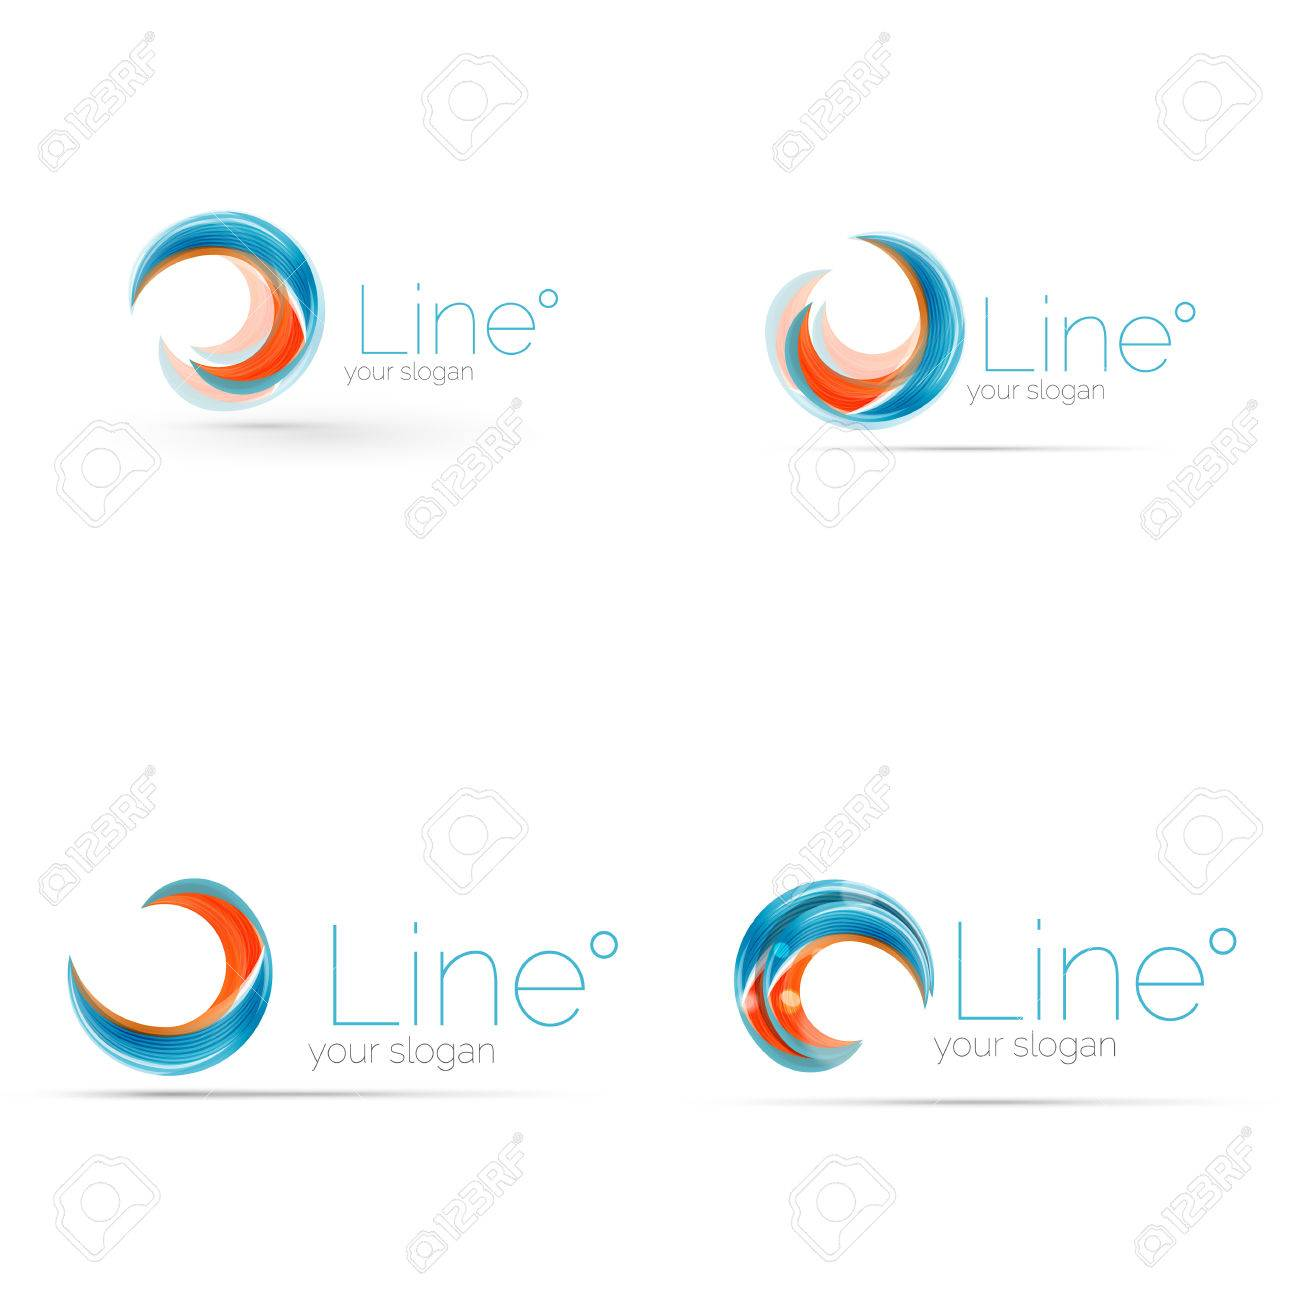 Swirl Blue Orange Company Logo Design. Universal For All Ideas And  Concepts. Business Creative